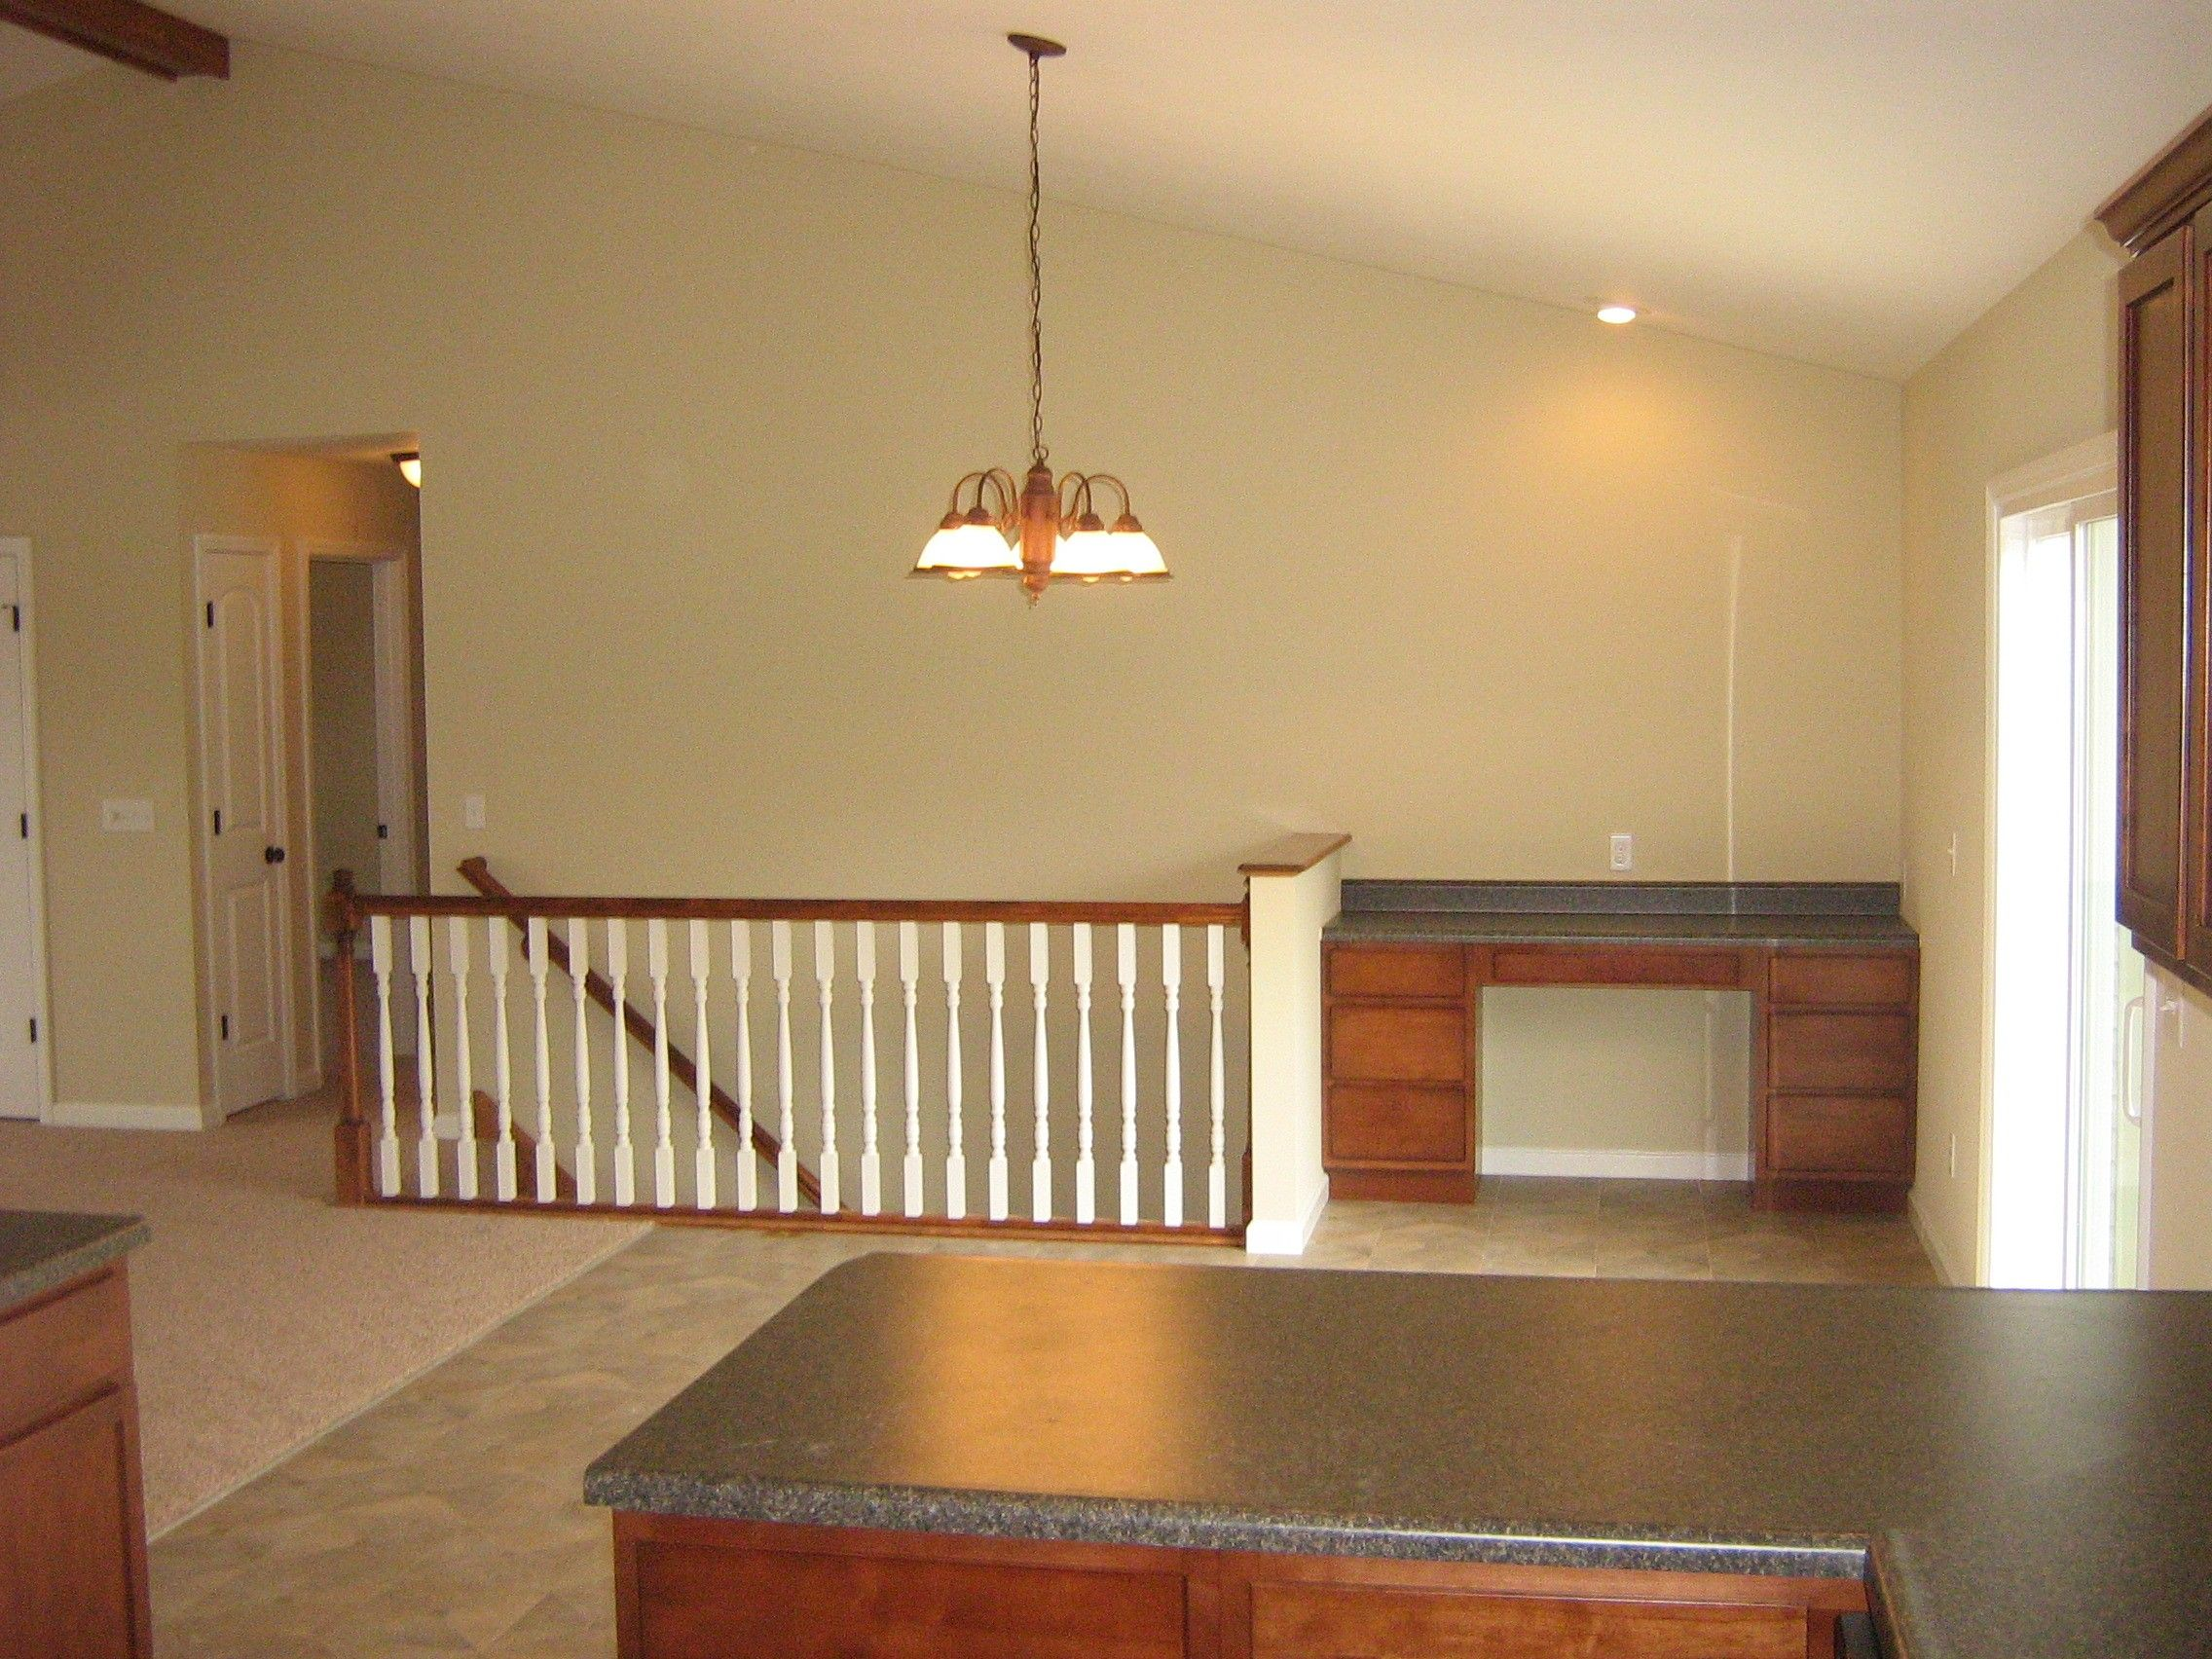 Living Area featured in The Persimmon By Cannon Builders, Inc.  in St. Louis, MO